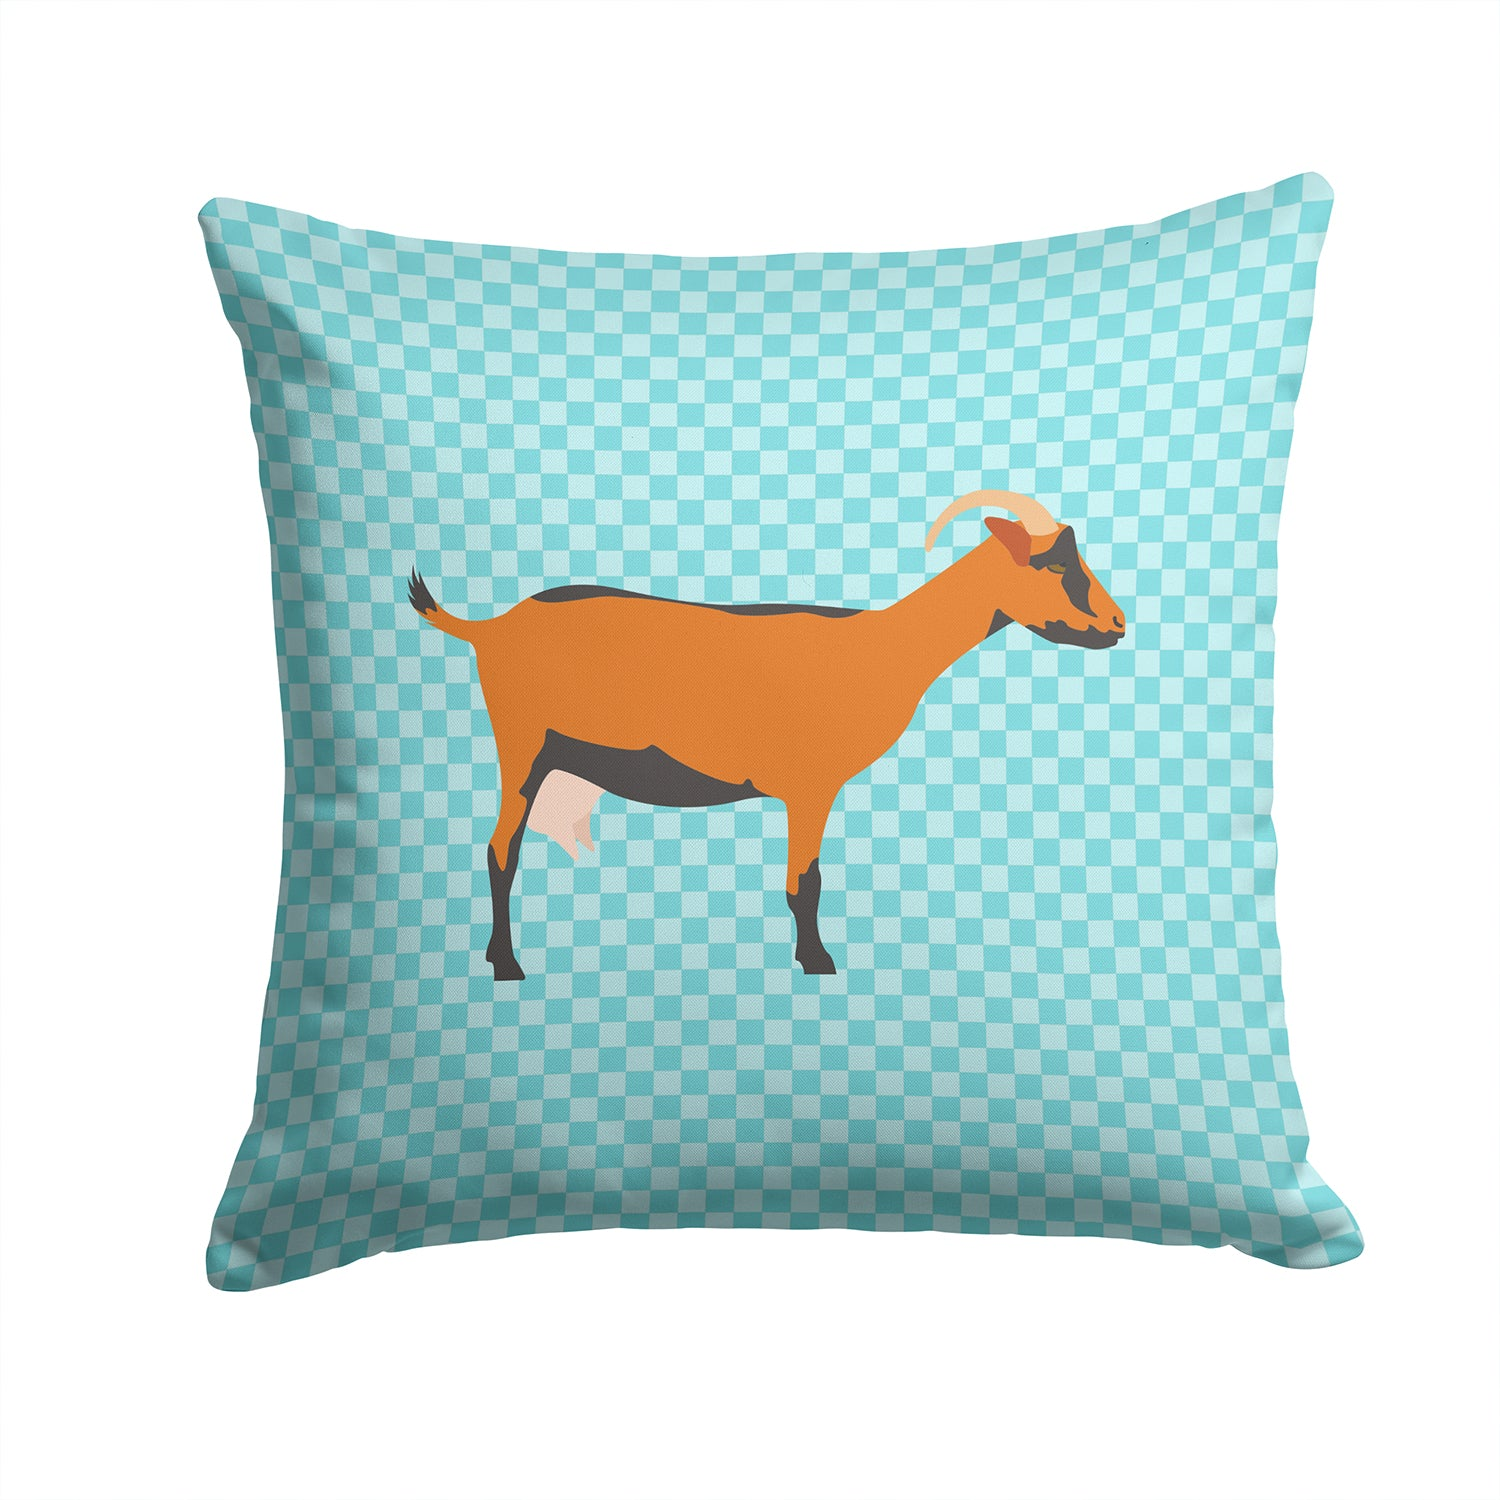 Oberhasli Goat Blue Check Fabric Decorative Pillow BB8062PW1414 by Caroline's Treasures